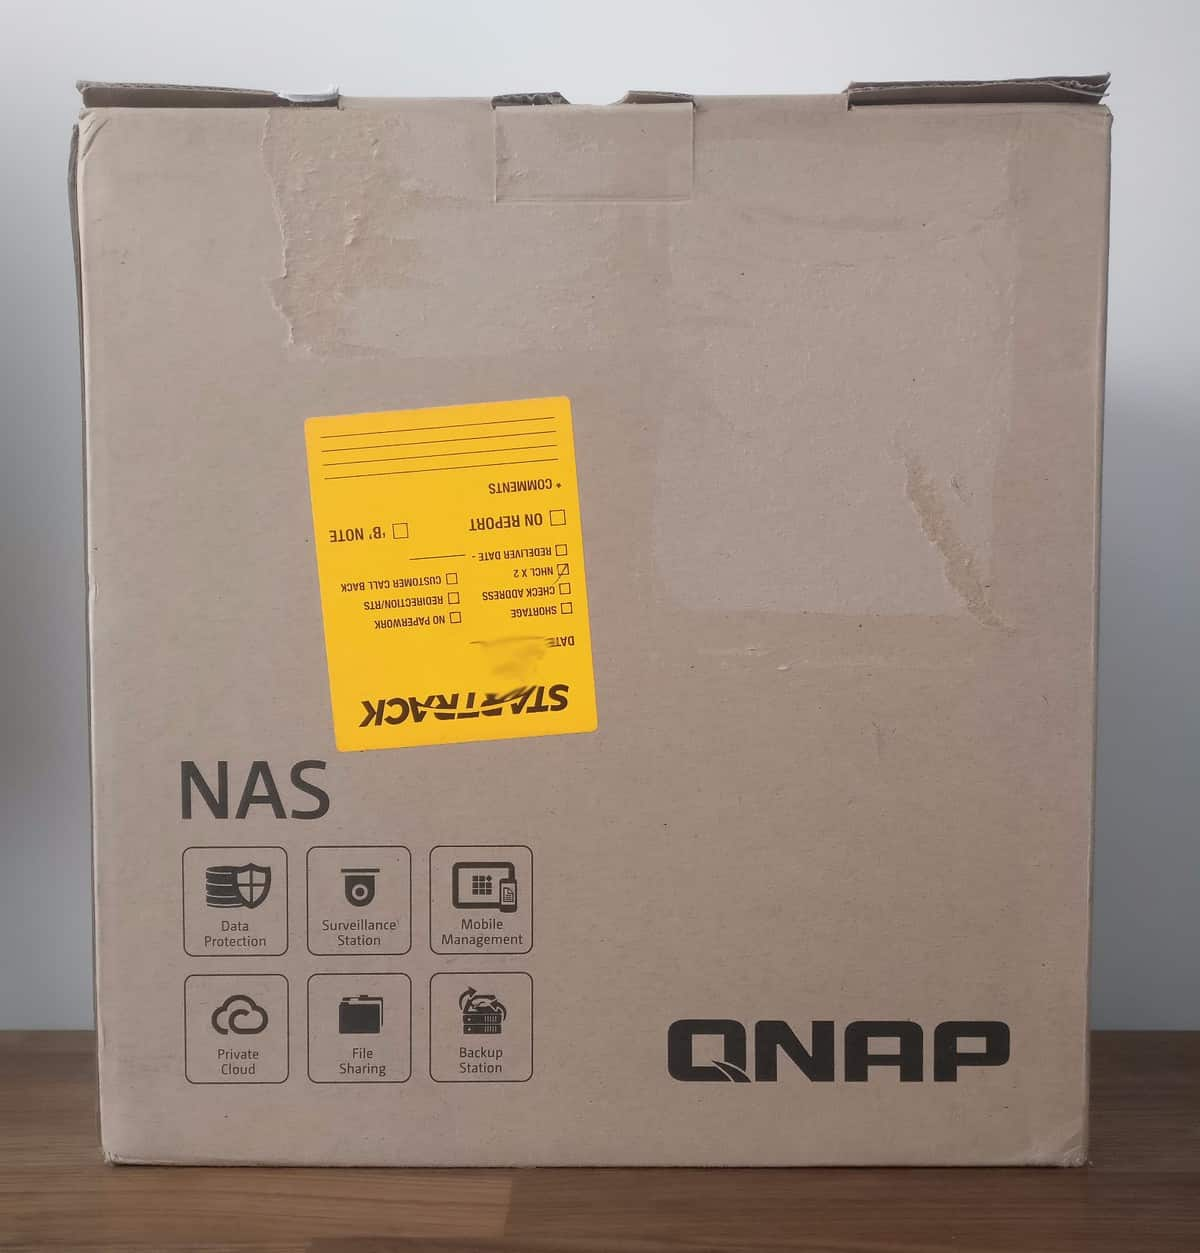 QNAP TS-453B 4 Bay NAS Review - The Streaming Blog